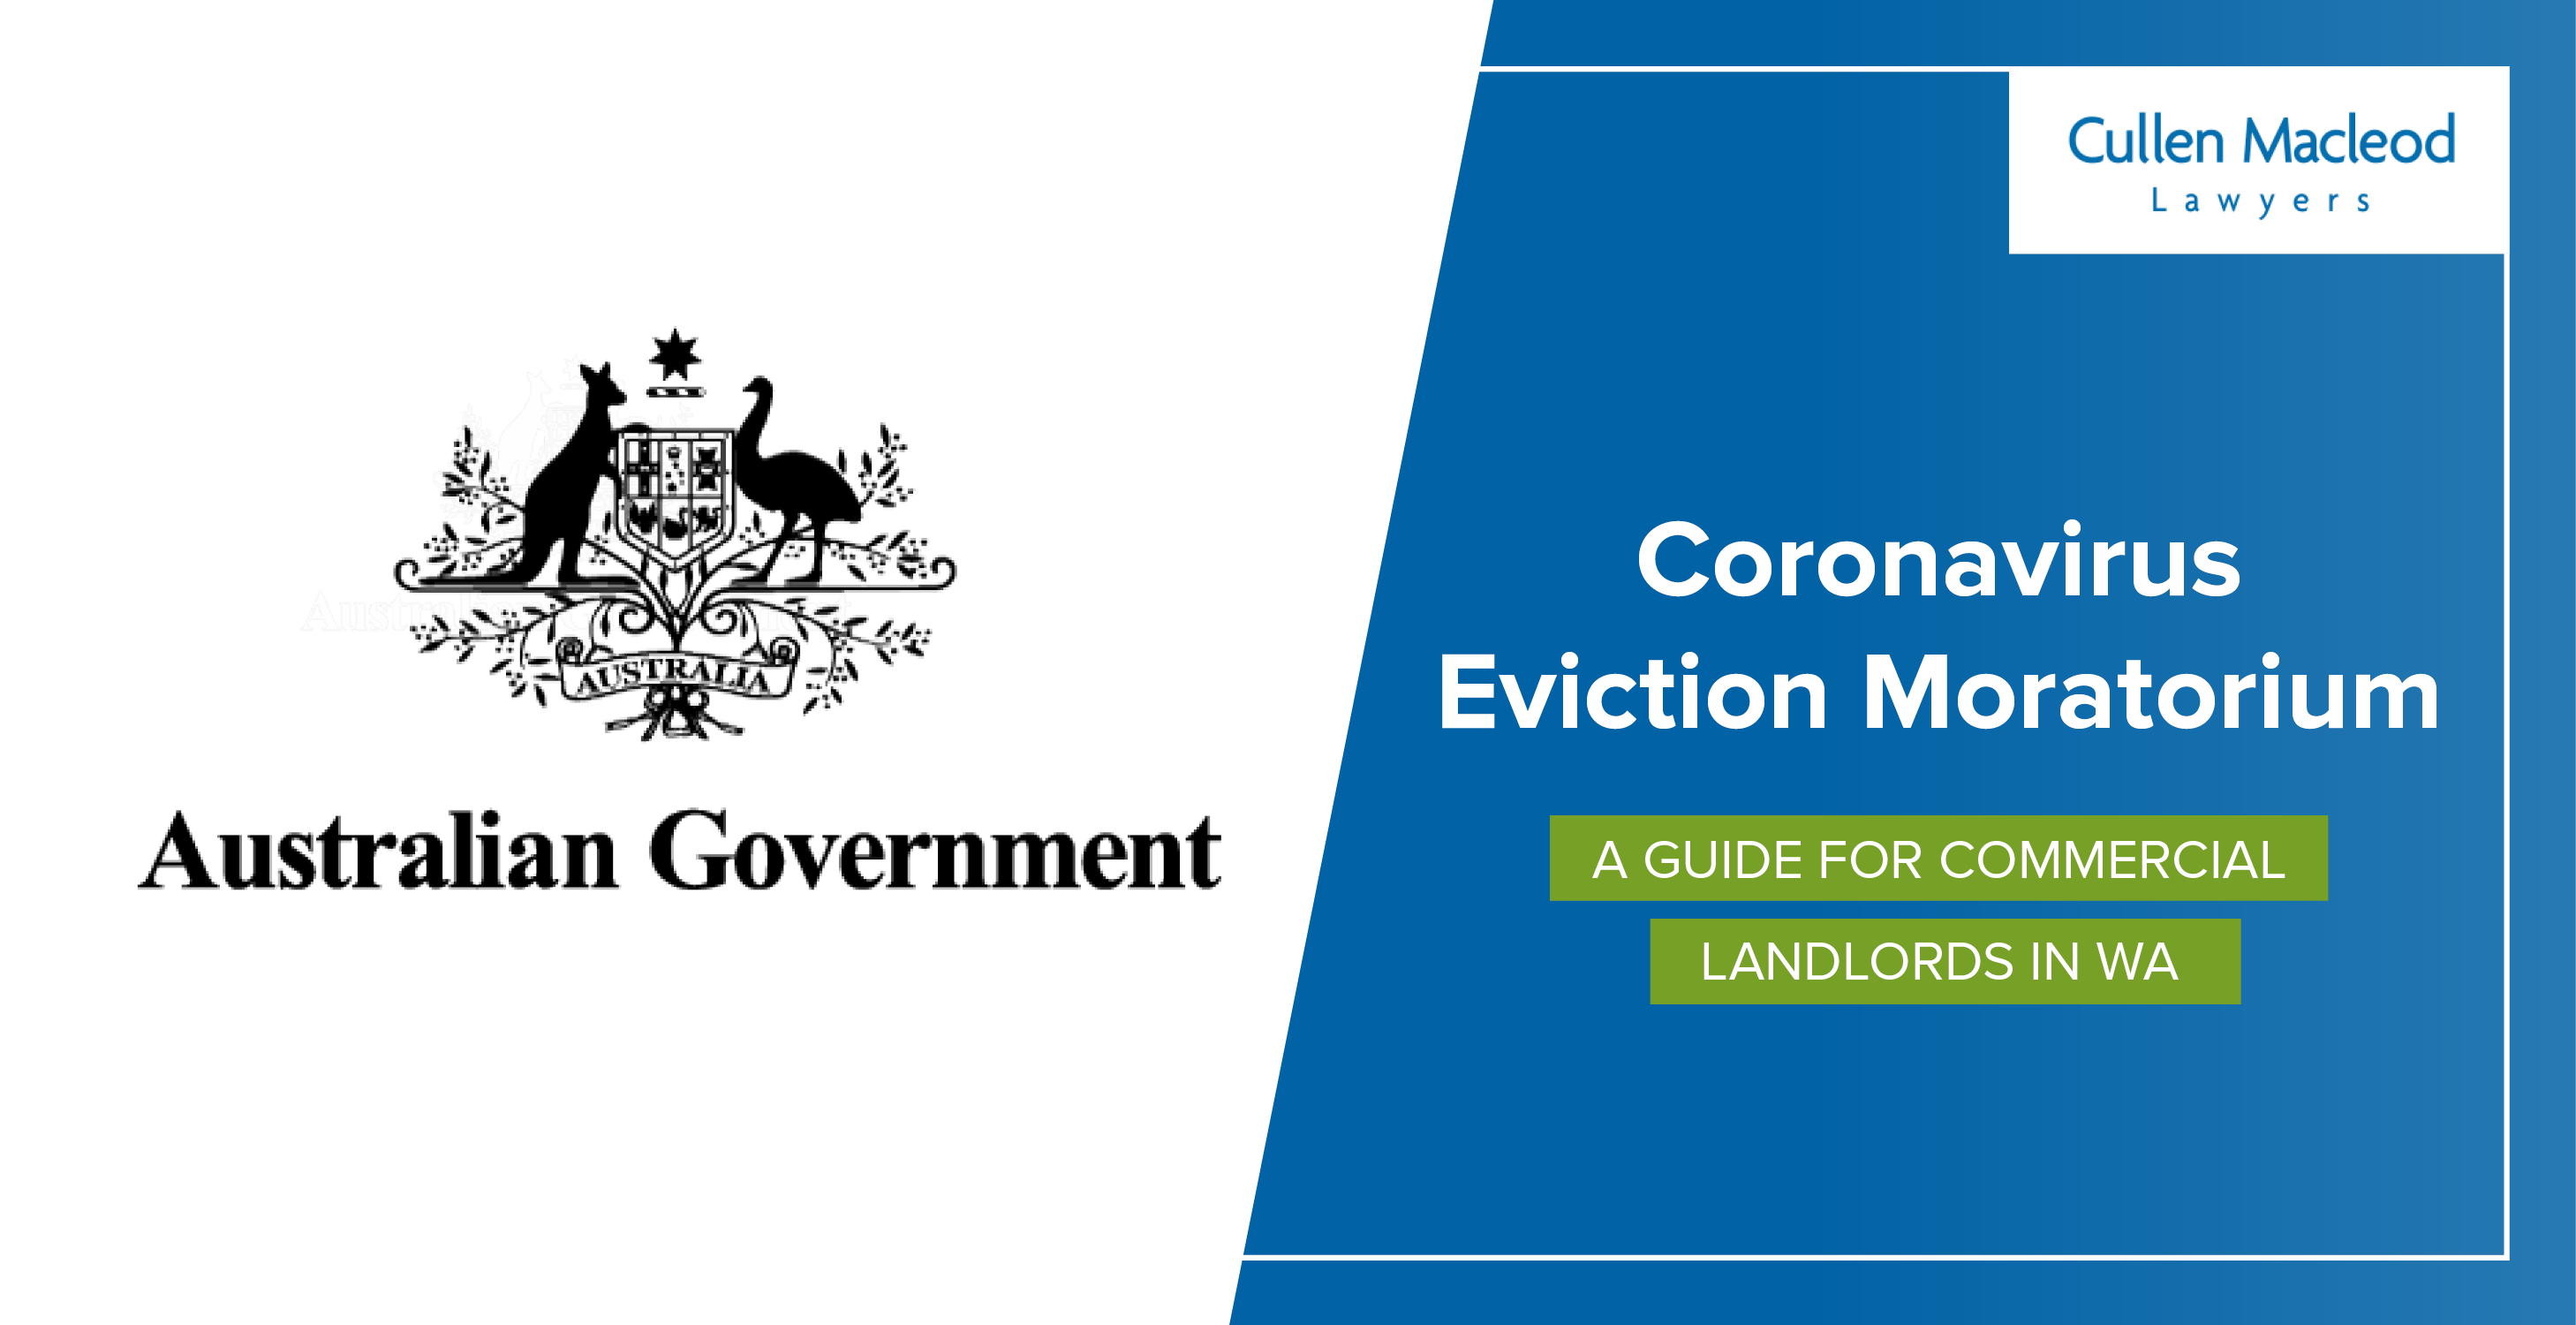 cullen-macleod-blog-feature-image-coronavirus-eviction-moratorium-2020-04-03